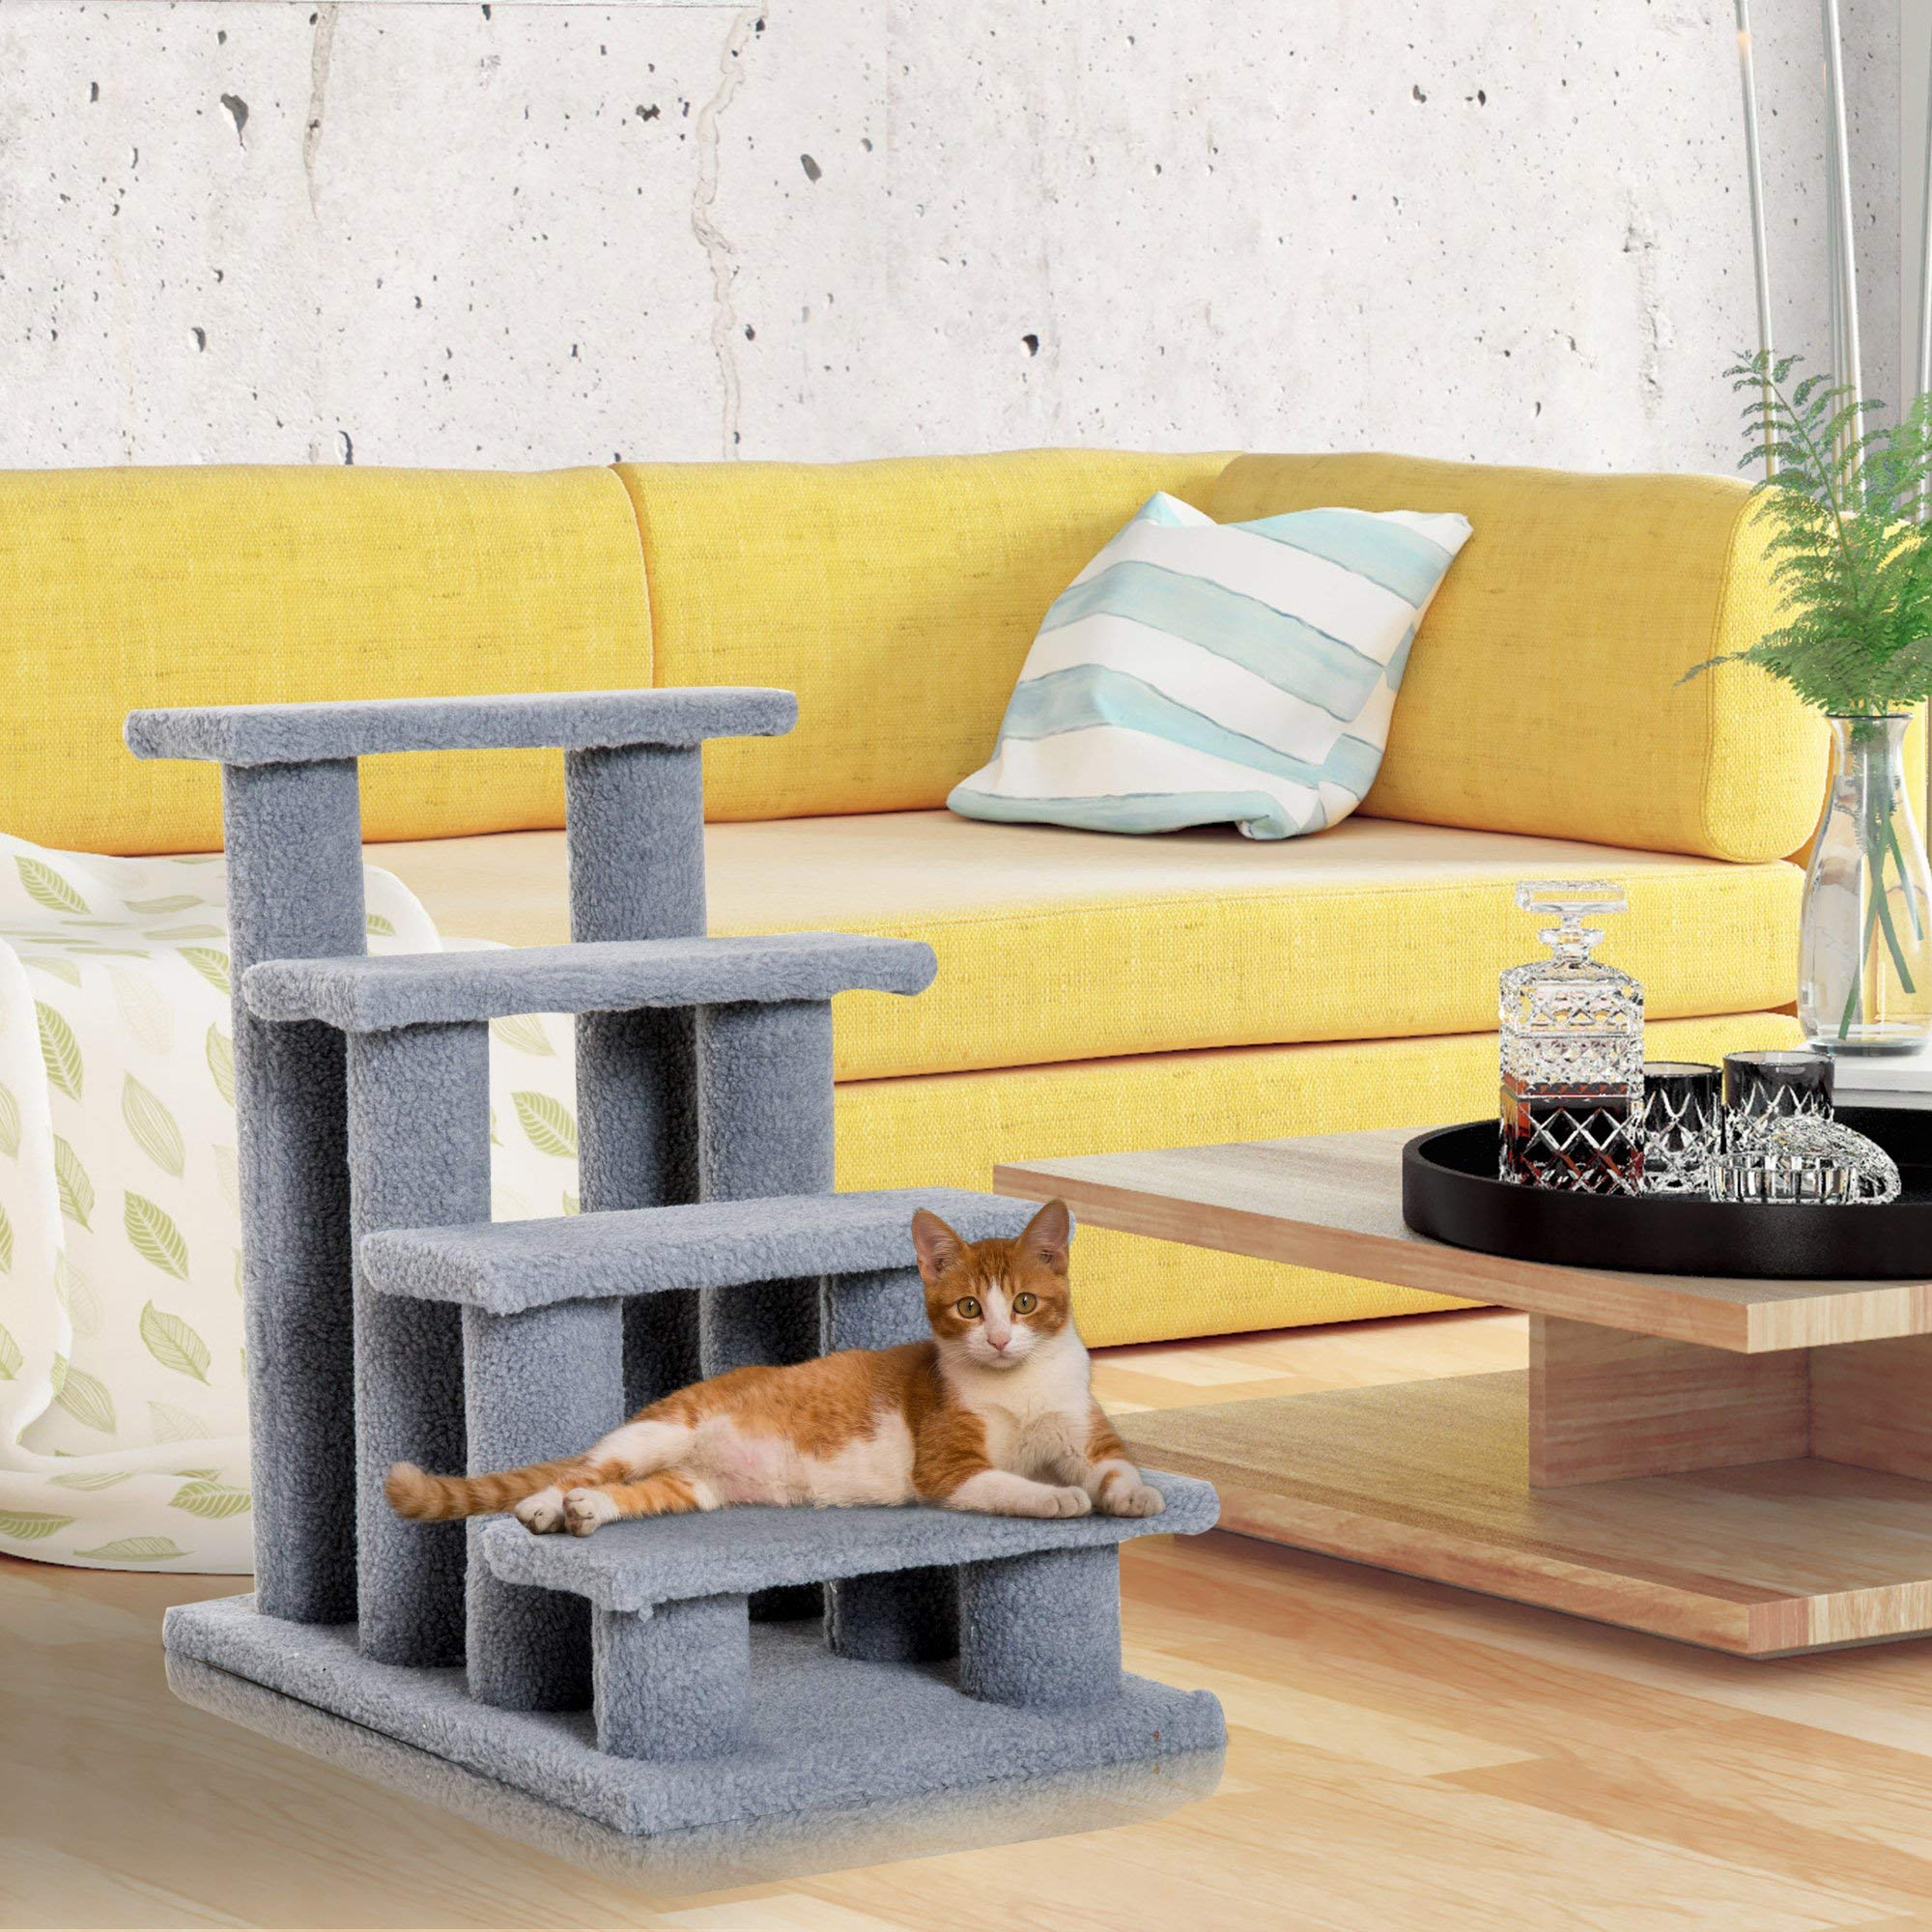 Festnight - Escalera para Gatos con 4 escalones, Color Gris, 61 cm: Amazon.es: Juguetes y juegos